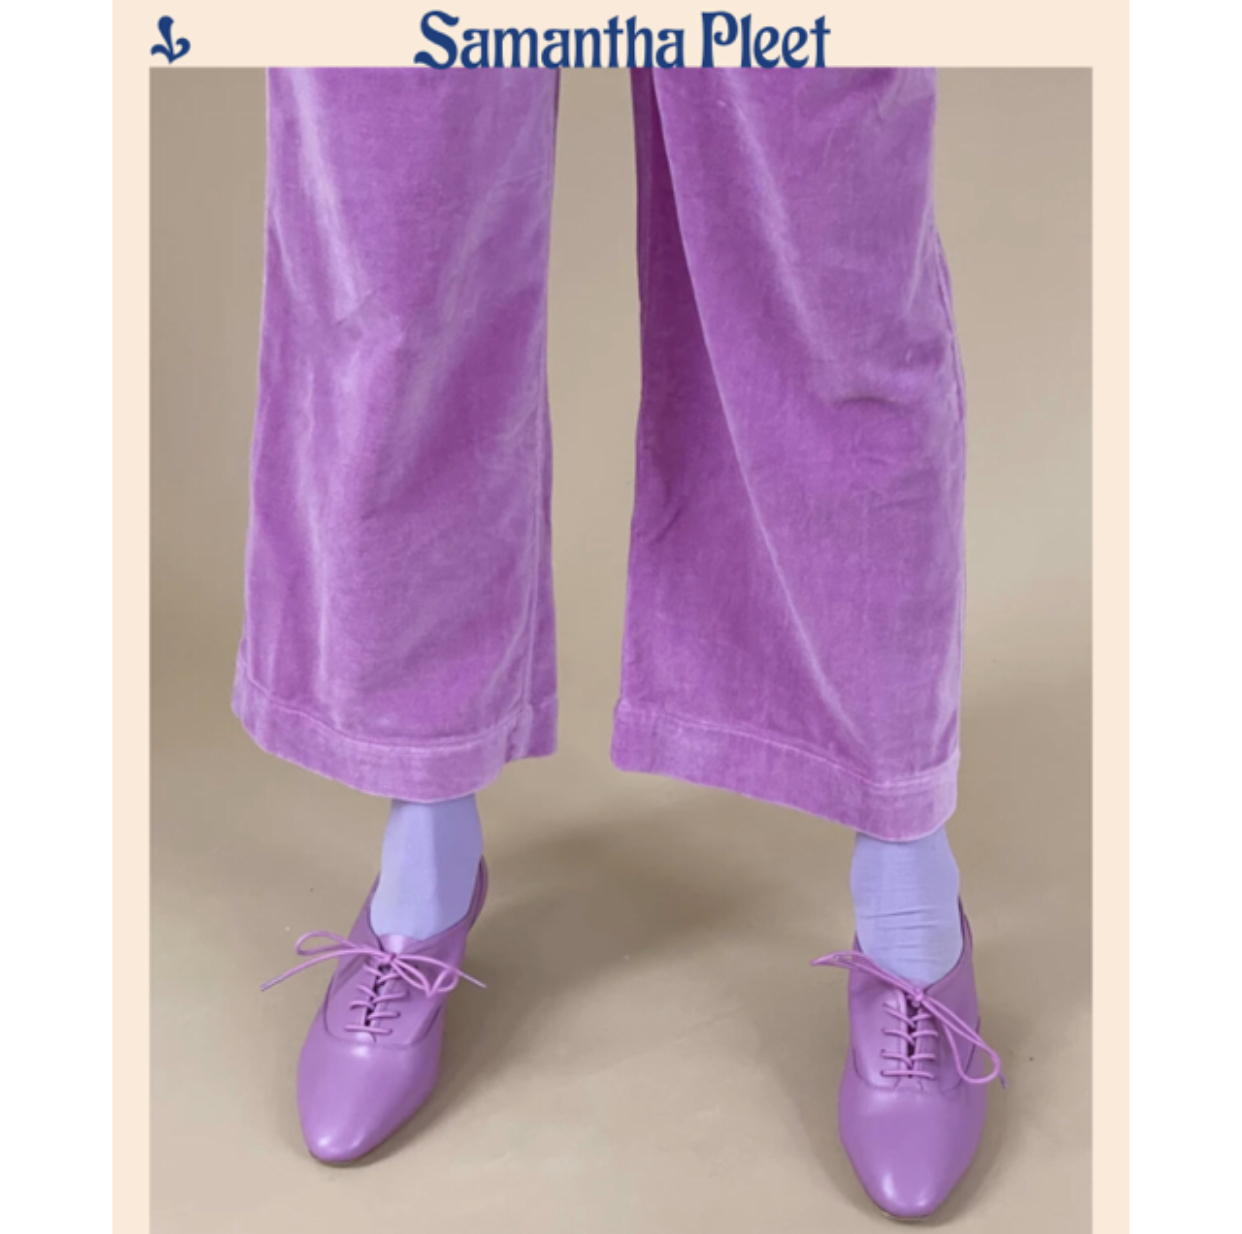 shop samantha pleet shoes